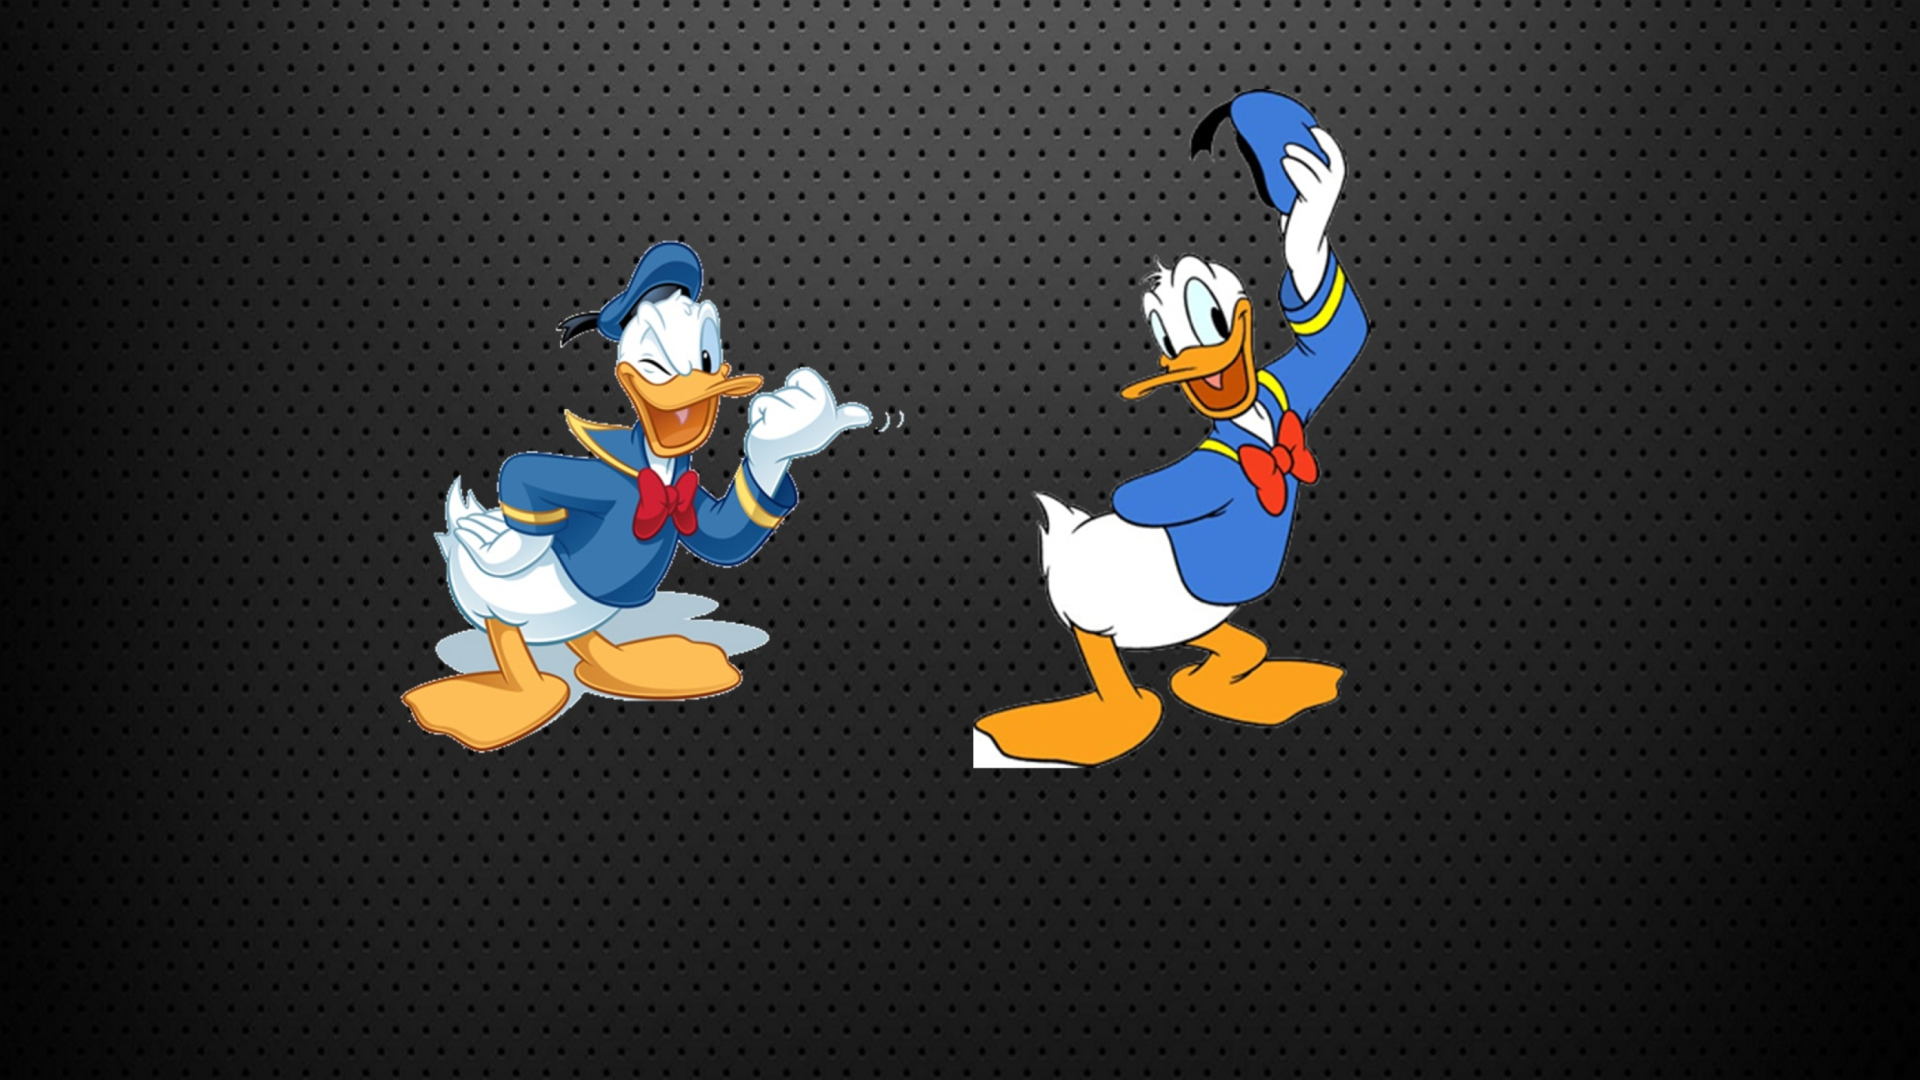 Girl Boss Wallpaper Iphone Donald Duck Wallpaper For Desktop 1920x1080 Full Hd